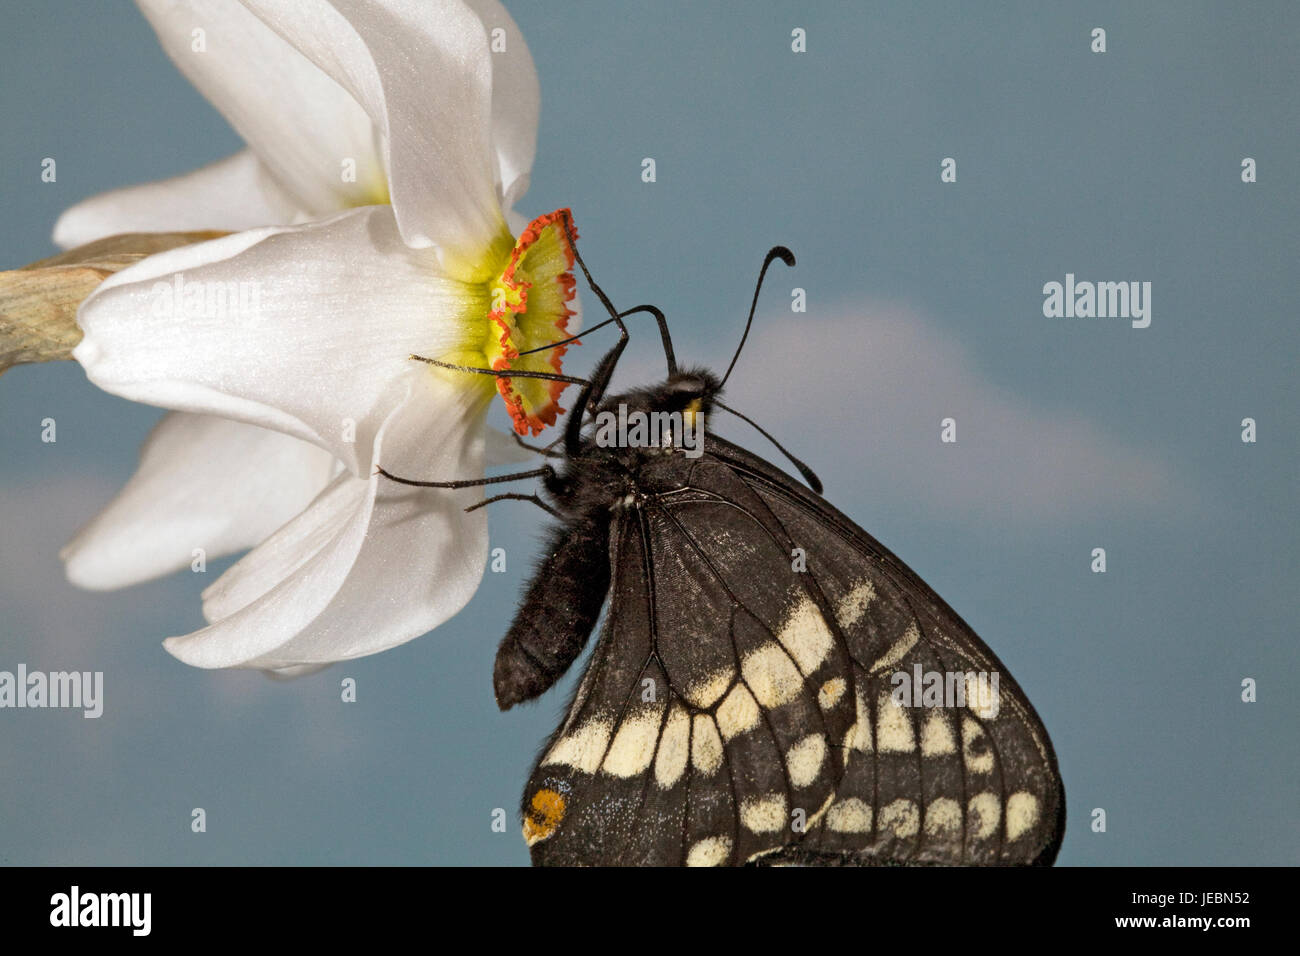 Indra Swallowtail butterfly, Papilio indra,  nectaring on a Pheasant's eye wild flower, Narcissus Poetica, Metolius - Stock Image